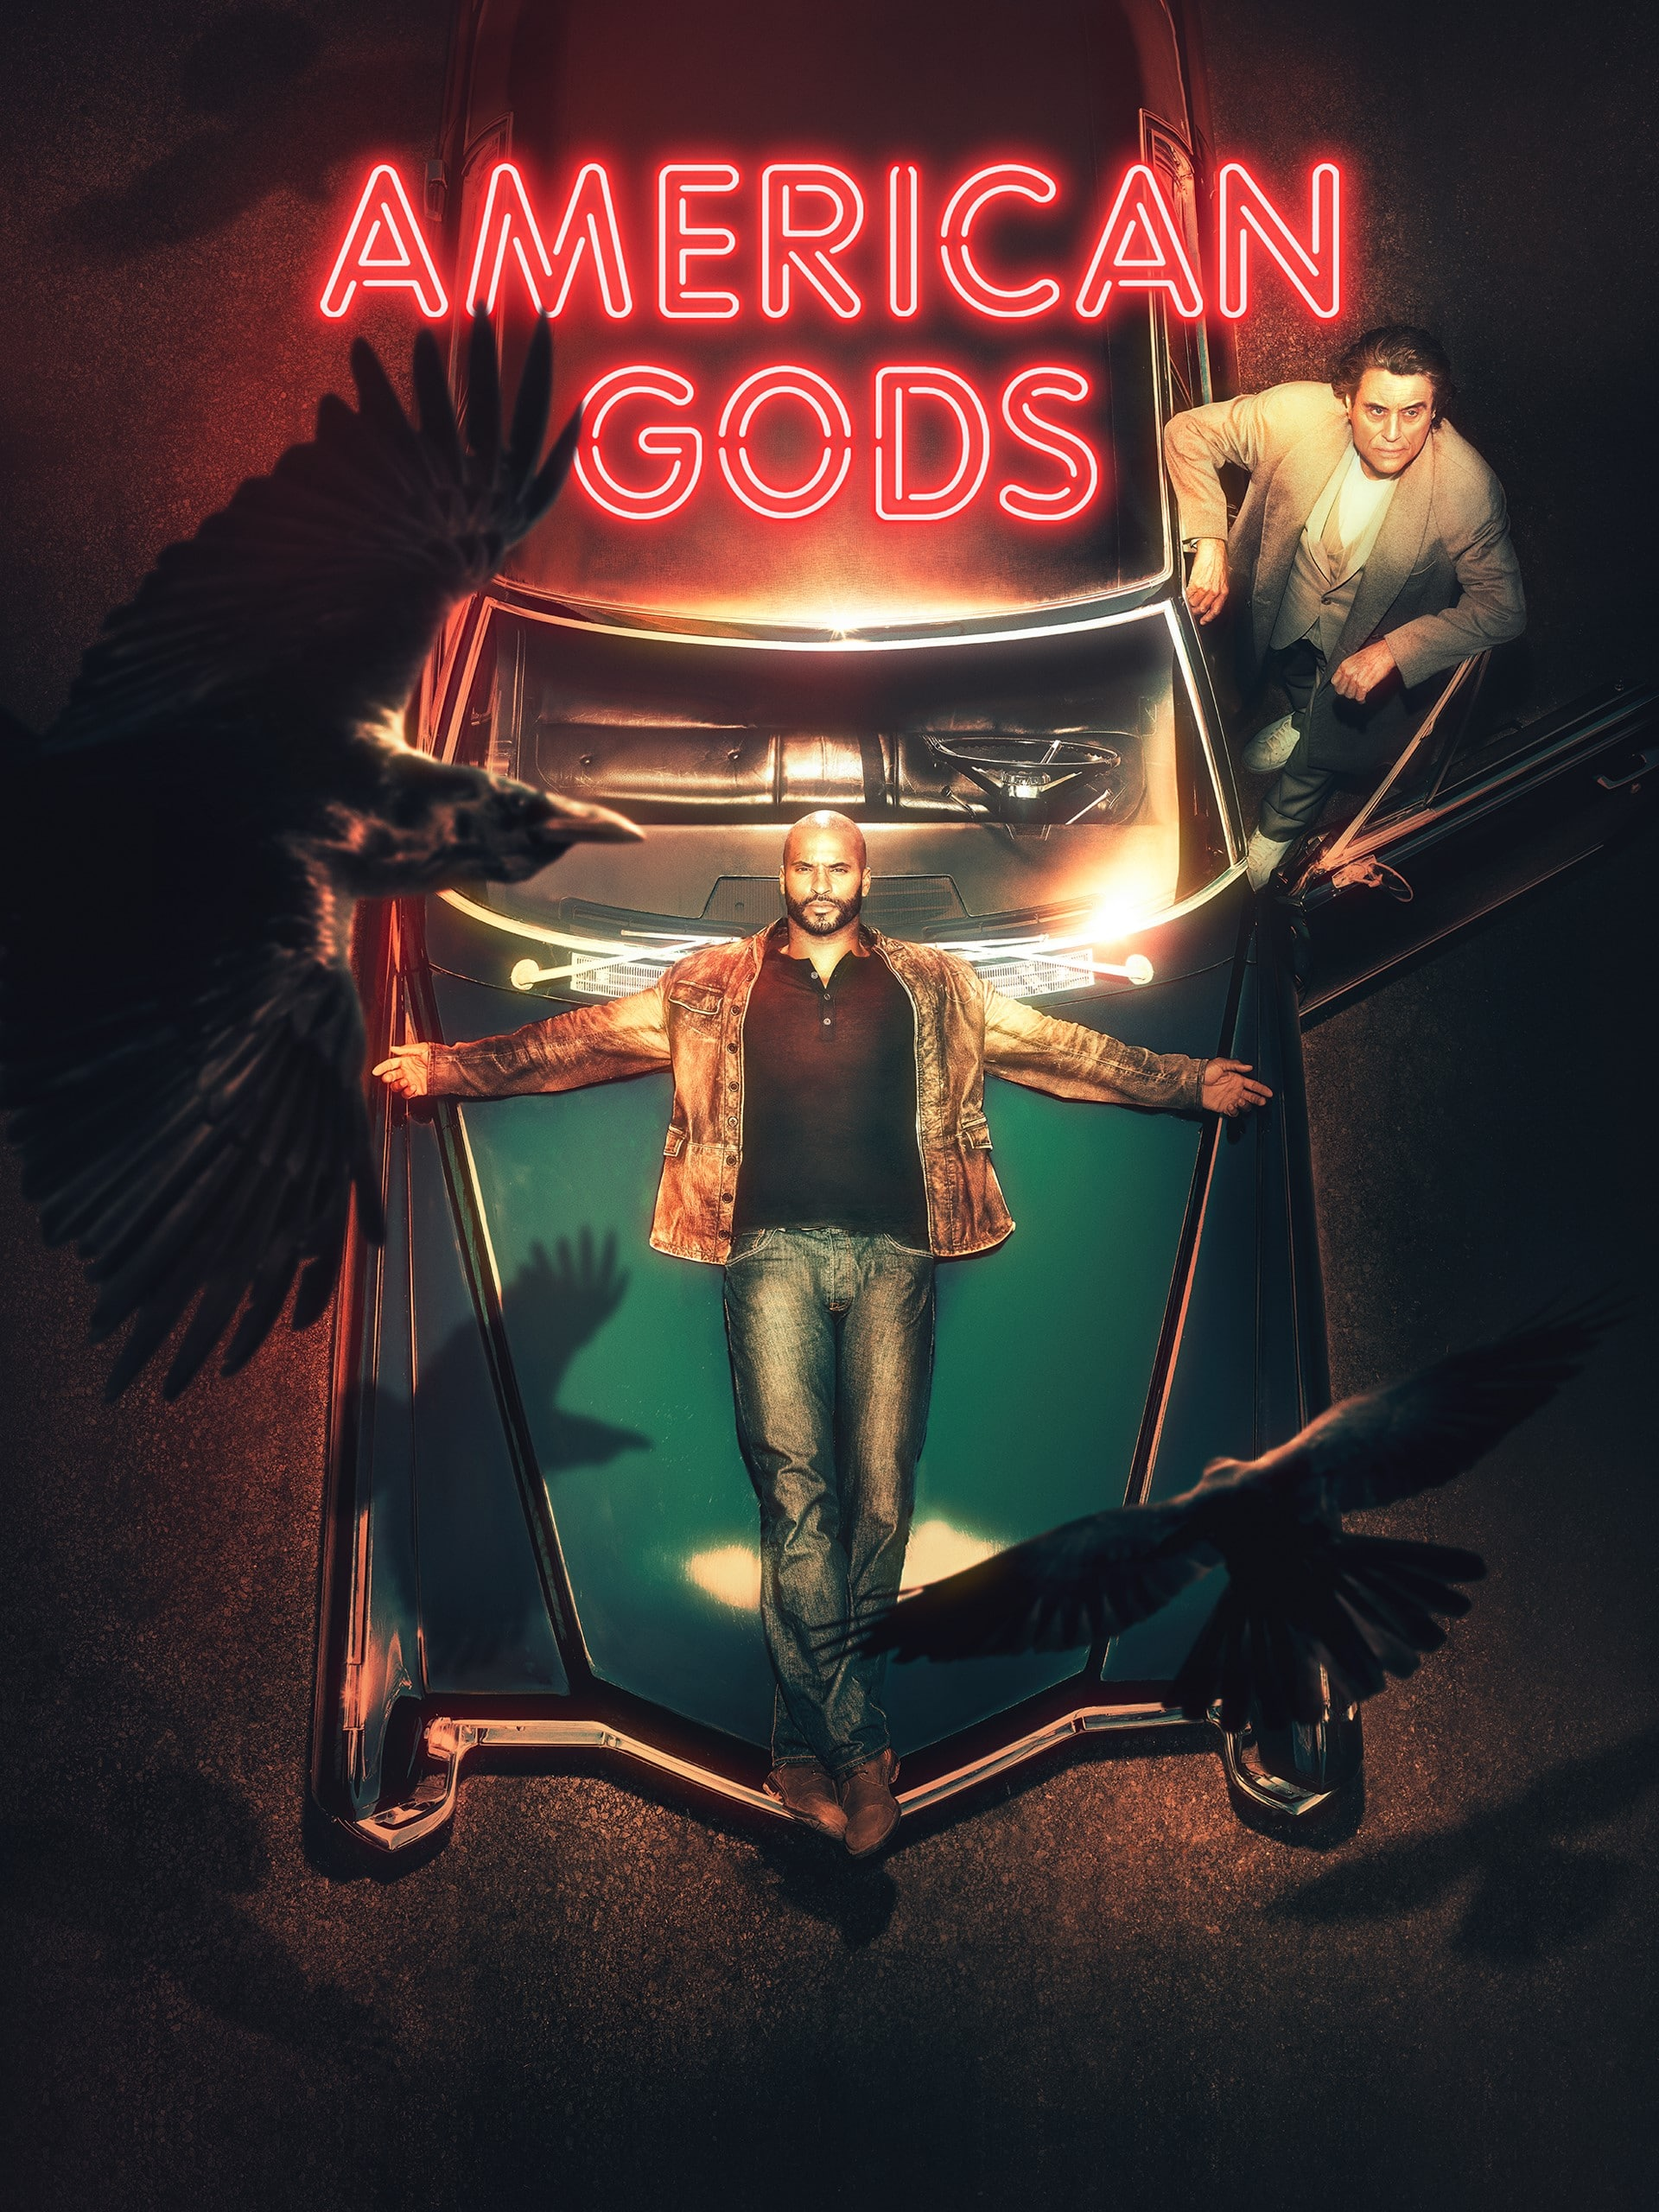 NYCC 2020: American Gods Season 3 Trailer Unveiled